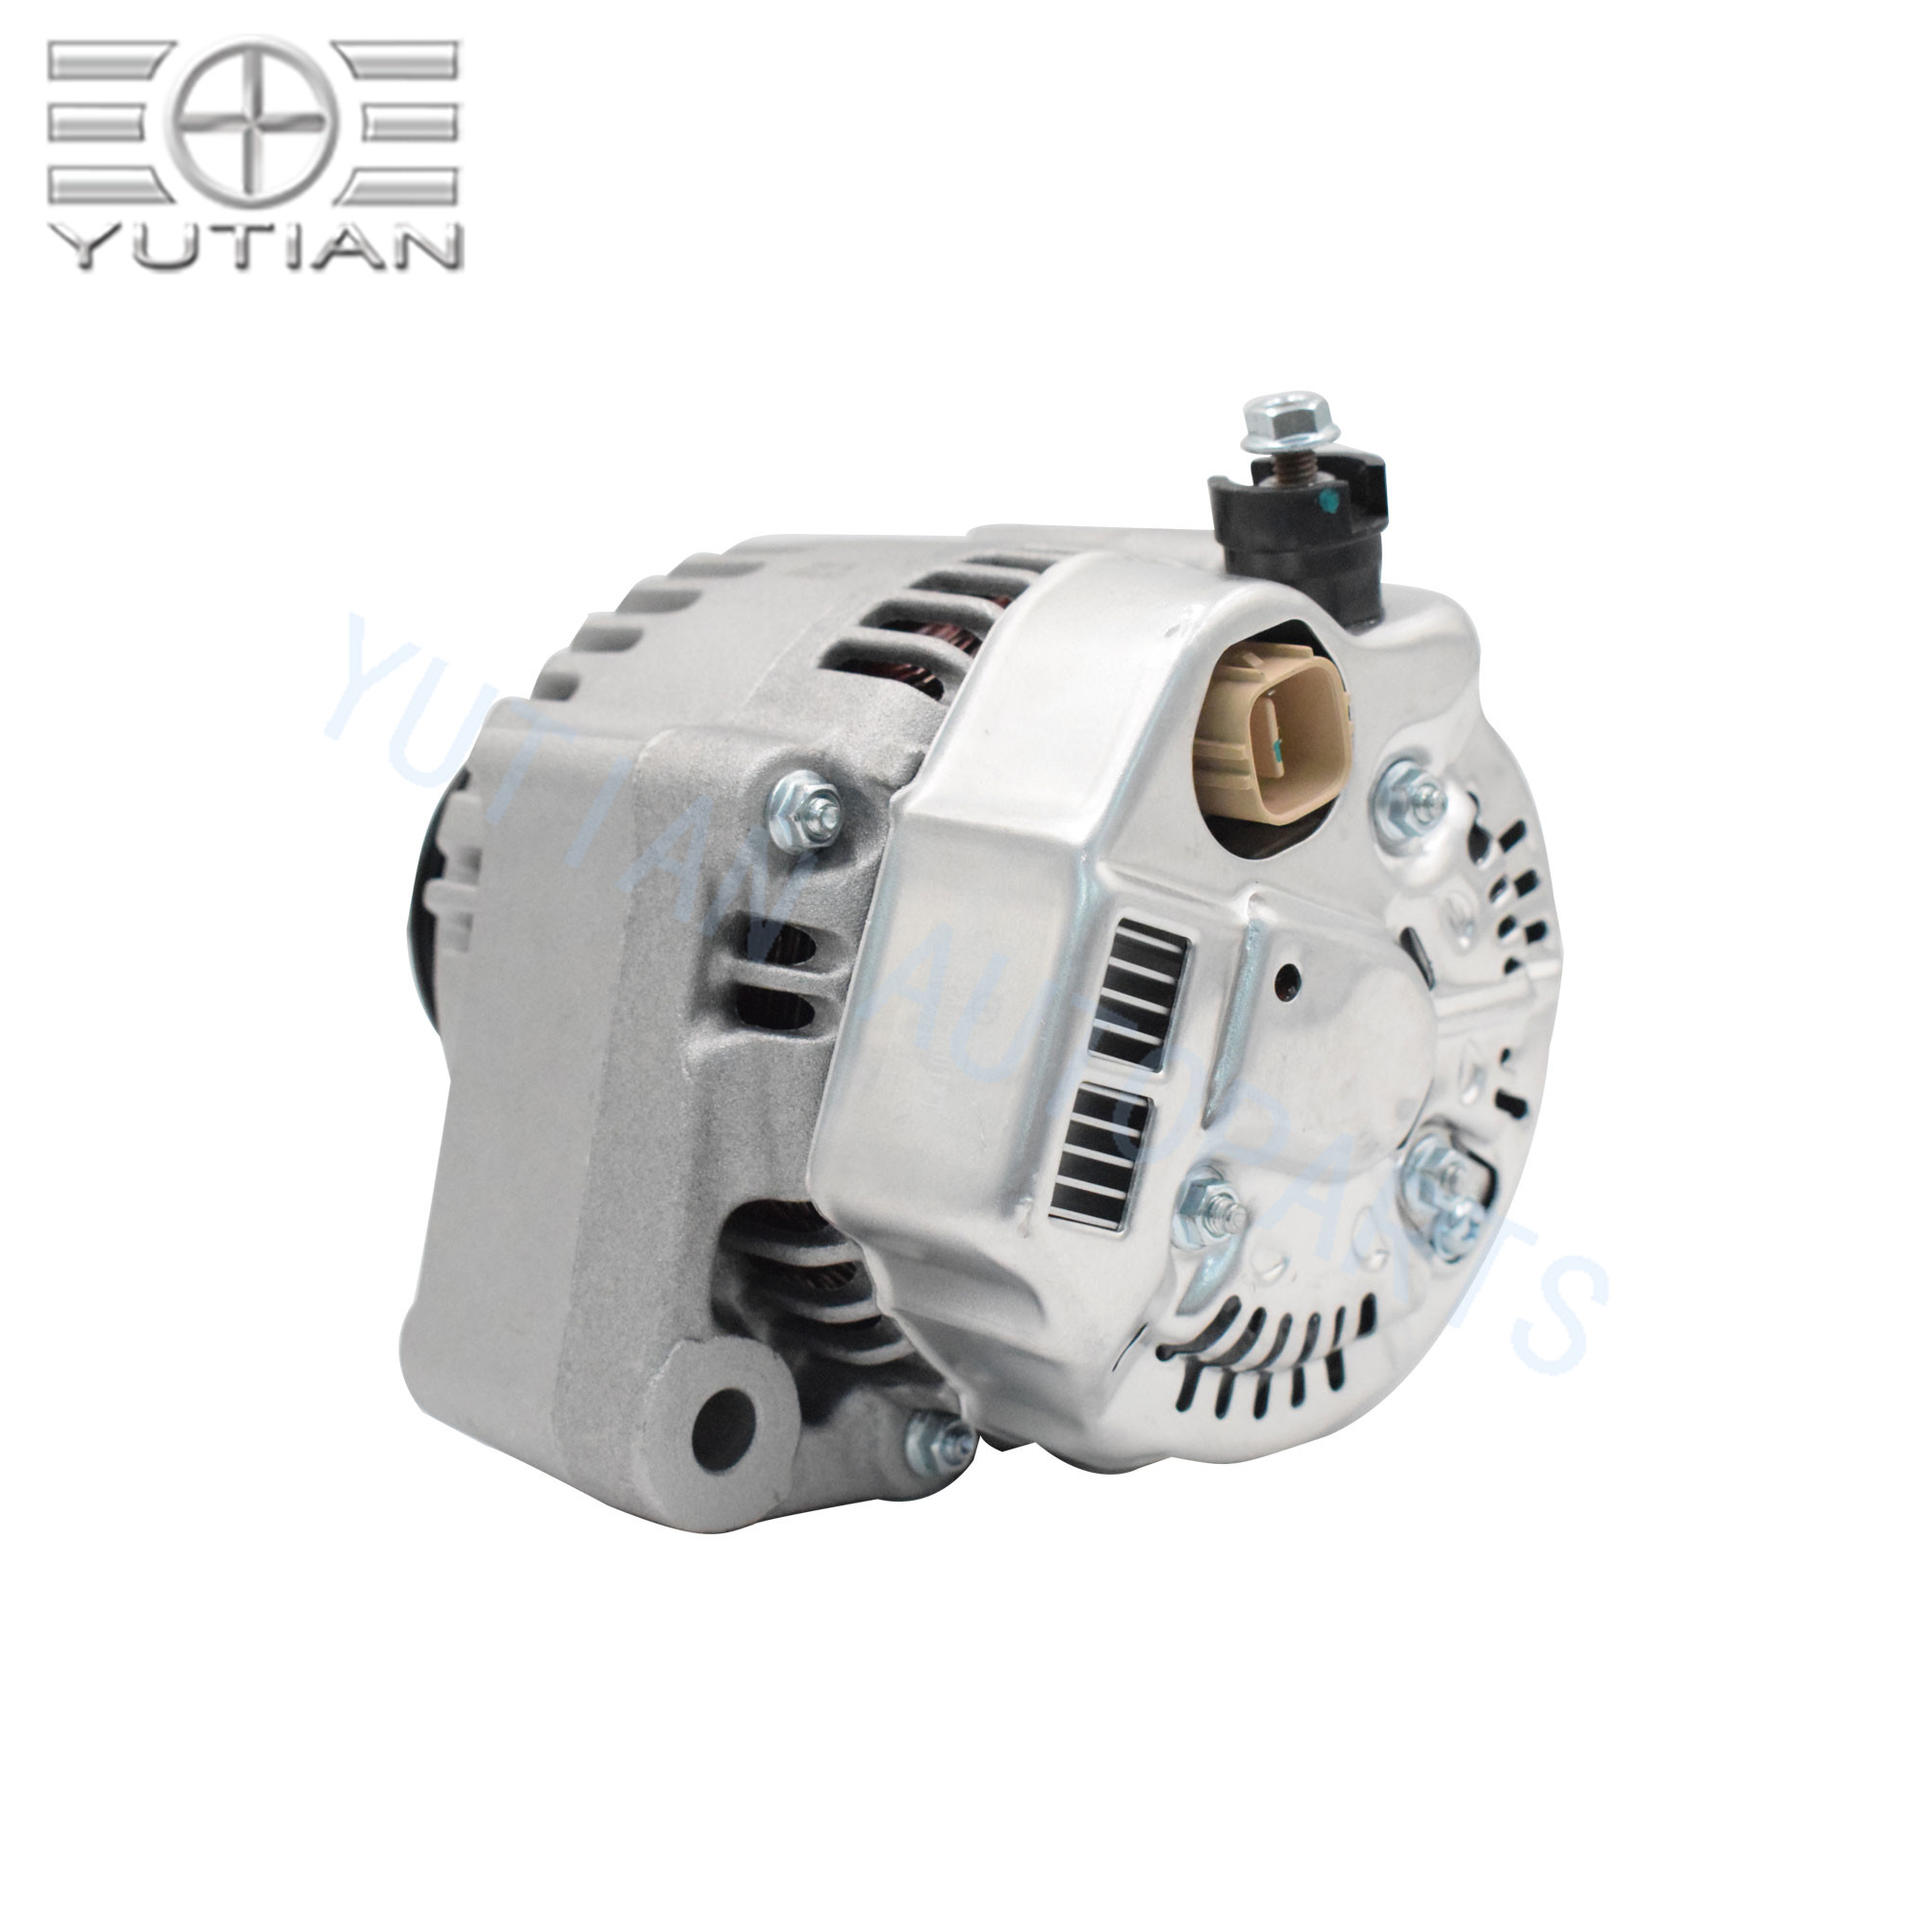 For Honda Alternator Accord 1998-2002 2.0L /2.3L Car generator 14V/85A/6PK  OEM 31100-PAA-A01